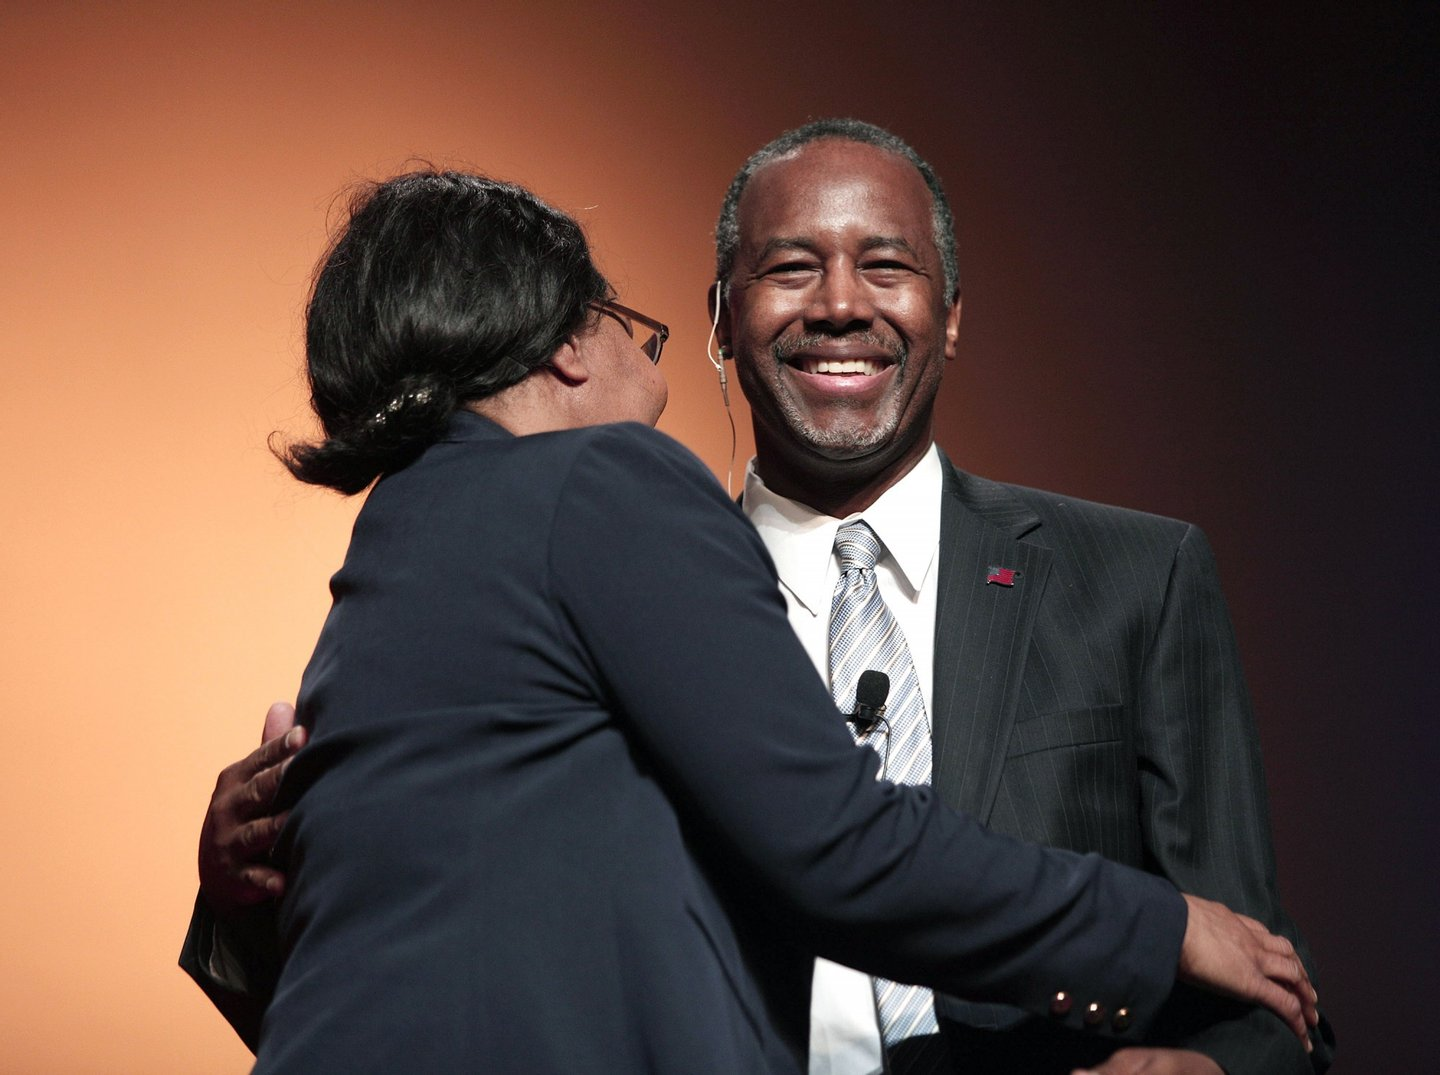 DETROIT, MI - MAY 4: Republican Dr. Ben Carson, a retired pediatric neurosurgeon, hugs his wife Candy as he officially announces his candidacy for President of the United States at the Music Hall Center for the Performing Arts May 4, 2015 in Detroit, Michigan. Carson was scheduled to travel today to Iowa, but changed his plans when his mother became critically ill. He now will be traveling to Dallas instead to be with his mother Sonya. (Photo by Bill Pugliano/Getty Images)